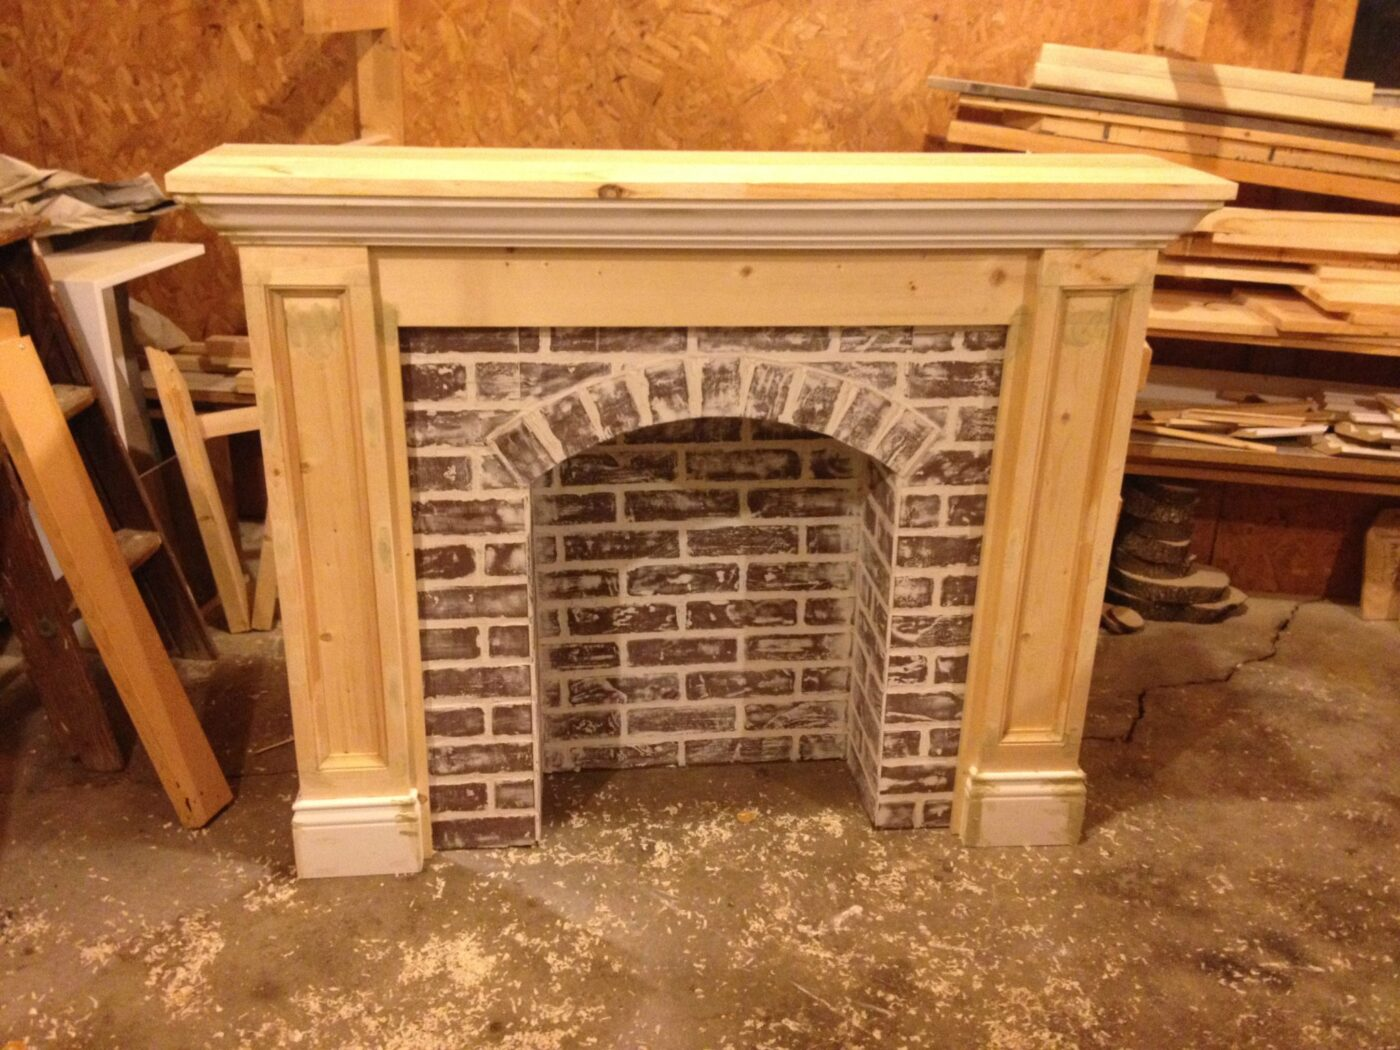 Fake Fireplaces For Decoration If You Re Going To Make It You Better Fake It Diy Fake Brick